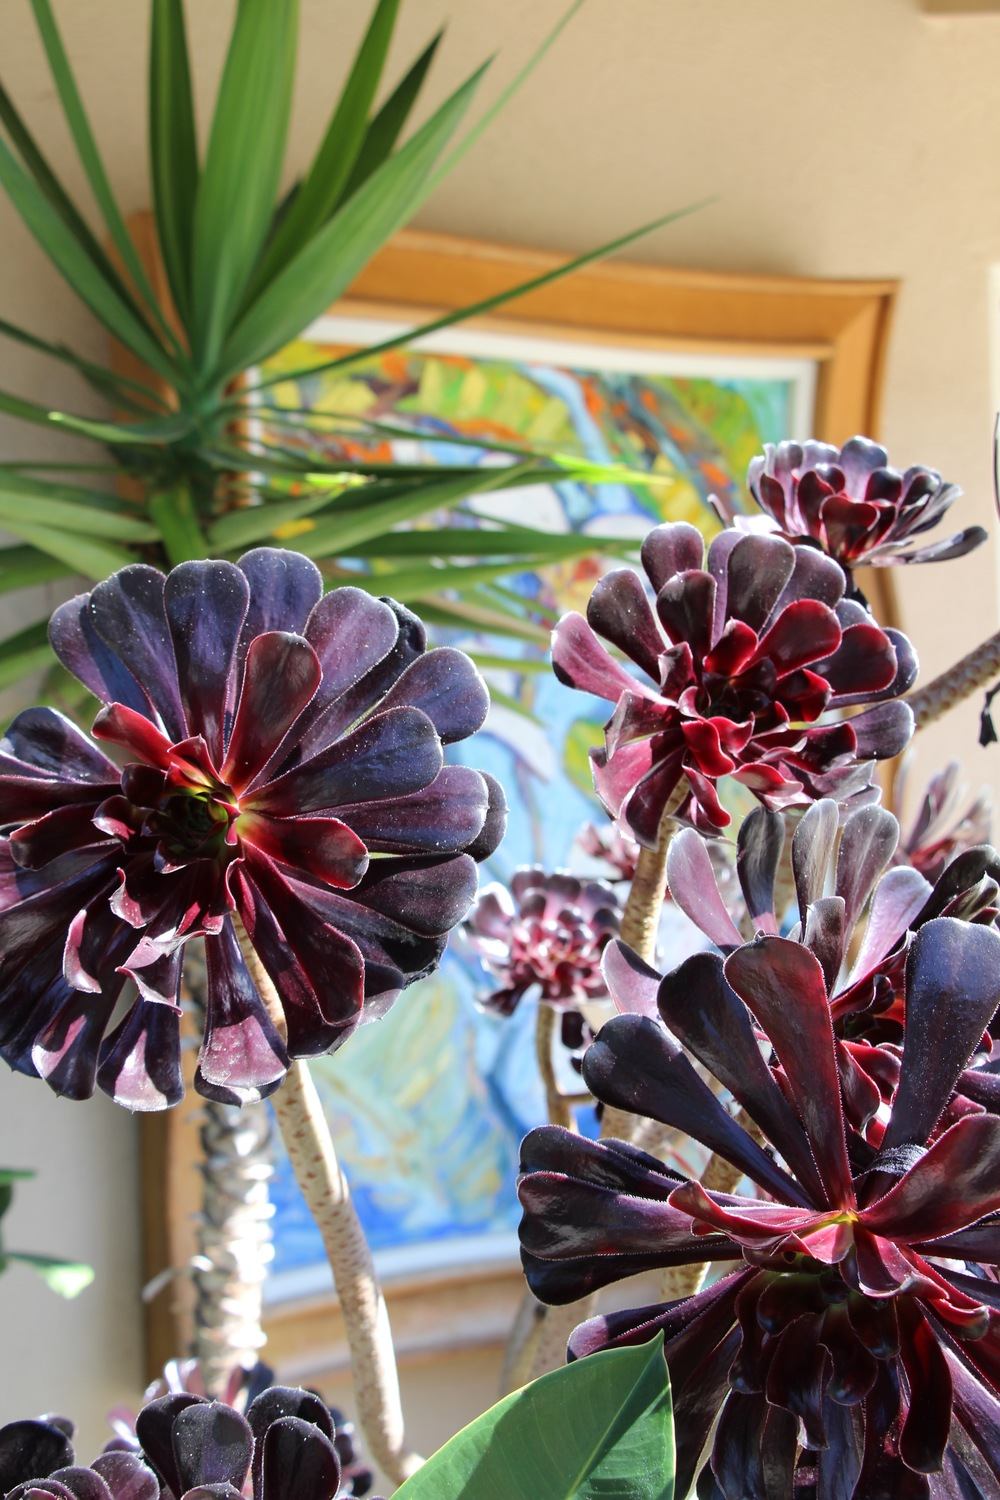 Gorgeous Aeonium 'Zwartkop' plants basking in the California sun.